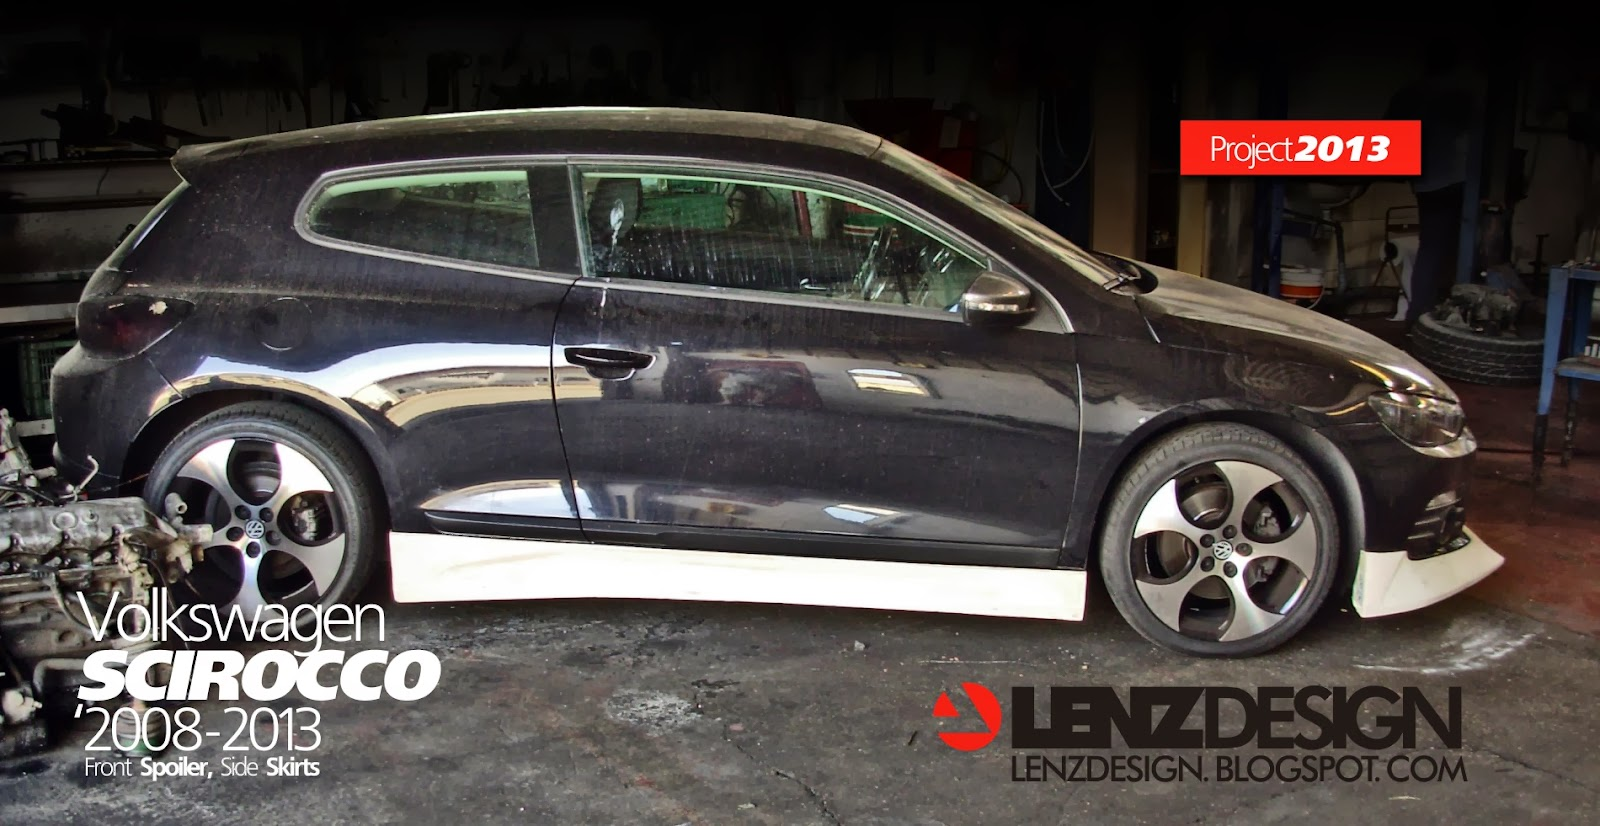 VW Scirocco Body Kit / Lenzdesign Performance Tuning Project